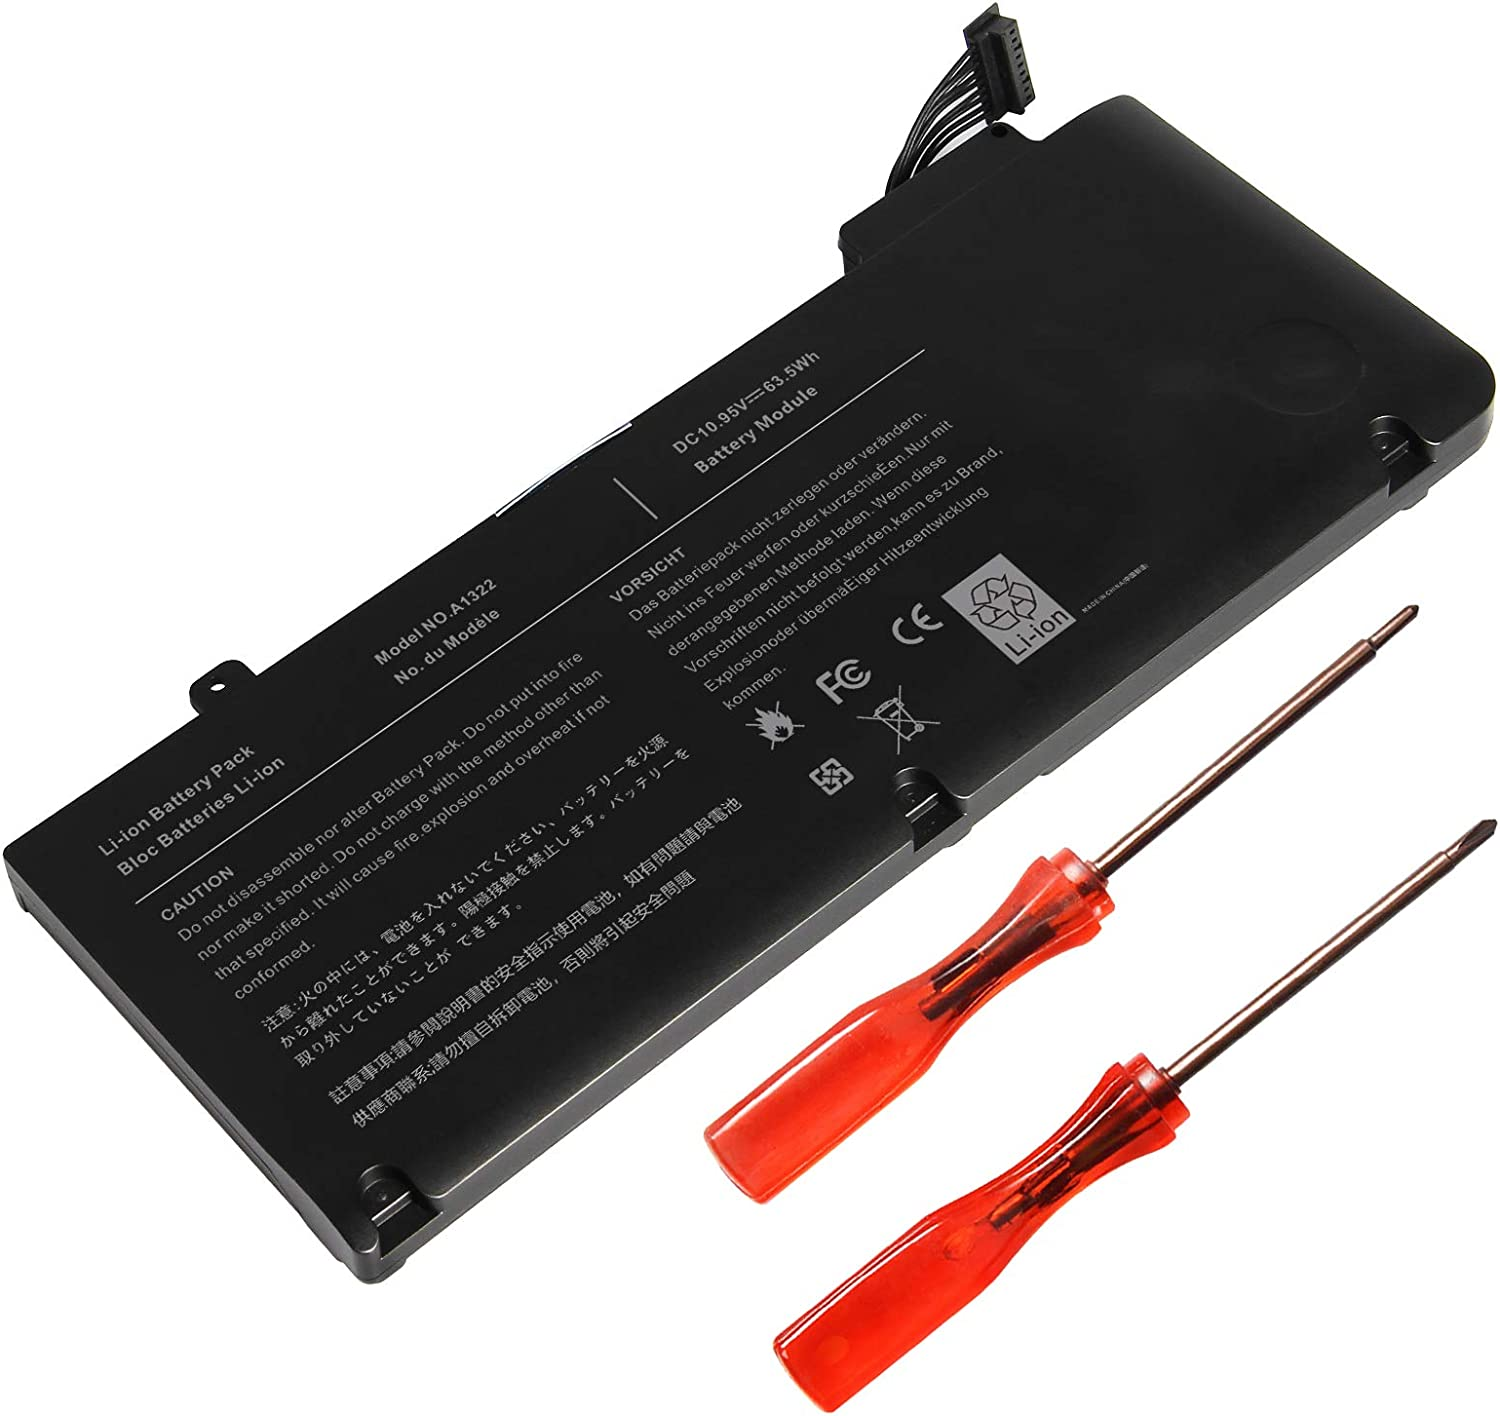 New A1322 Laptop Battery for Apple MacBook Pro 13 inch A1278 A1322 Mid 2009 2010 Early 2011 2012, fit MB990LL/A MB991LL/A MC375LL/A MD314LL/A MC724LL/A